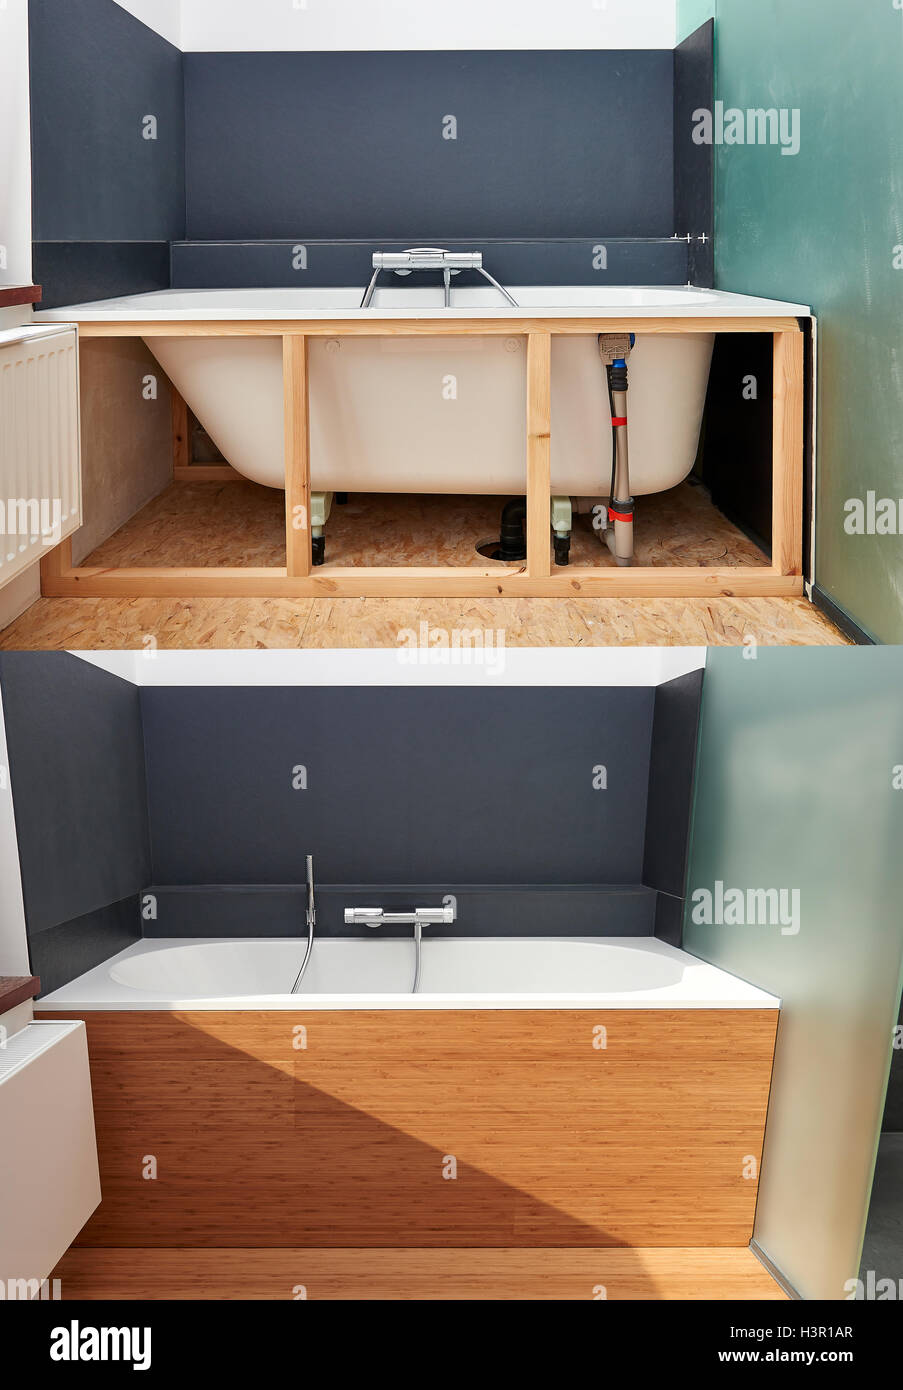 Remodeling Bathroom Stock Photos Remodeling Bathroom Stock Images - Steps to redoing a bathroom